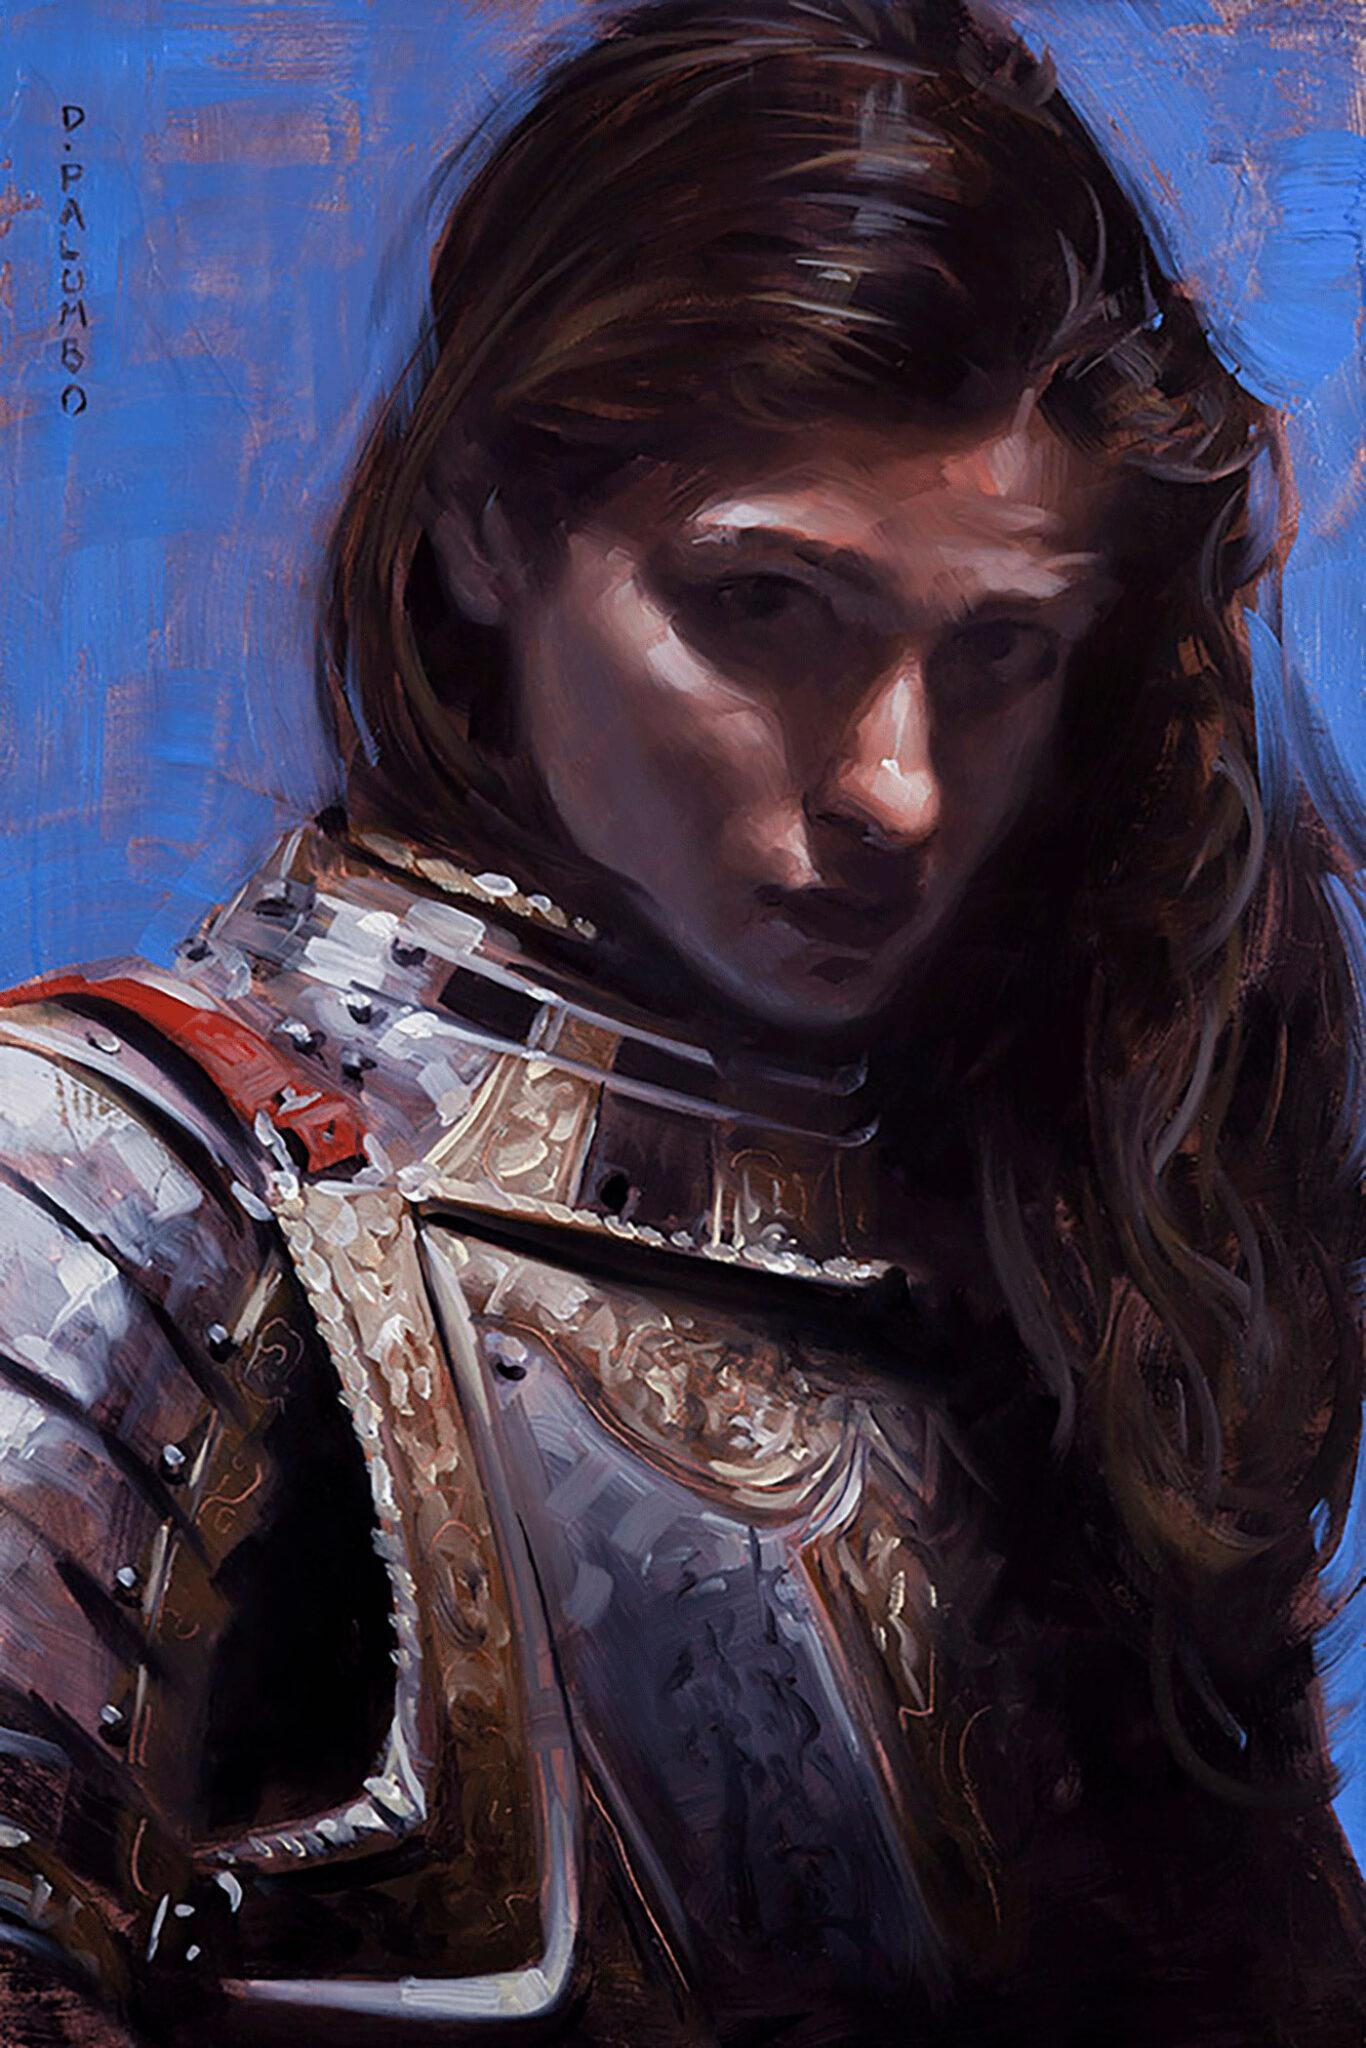 Richard Solomon - David-Palumbo-229-portrait-of-young-woman-in-armor